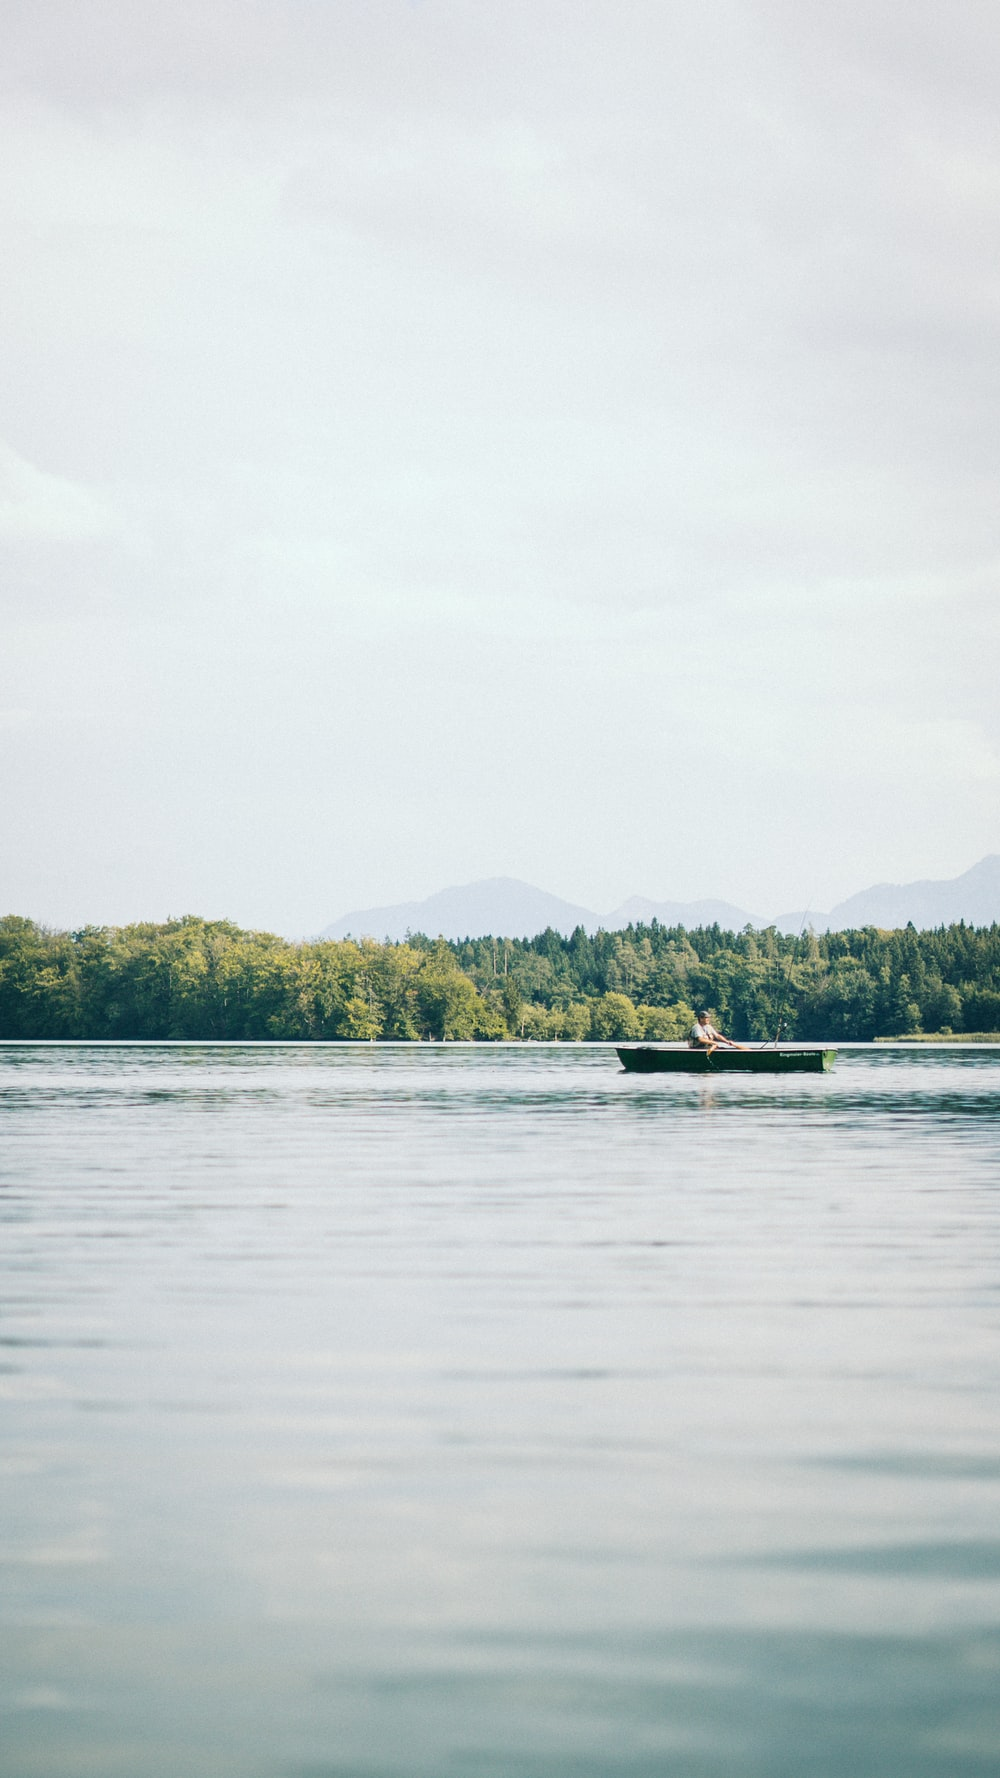 person riding canoe during daytime